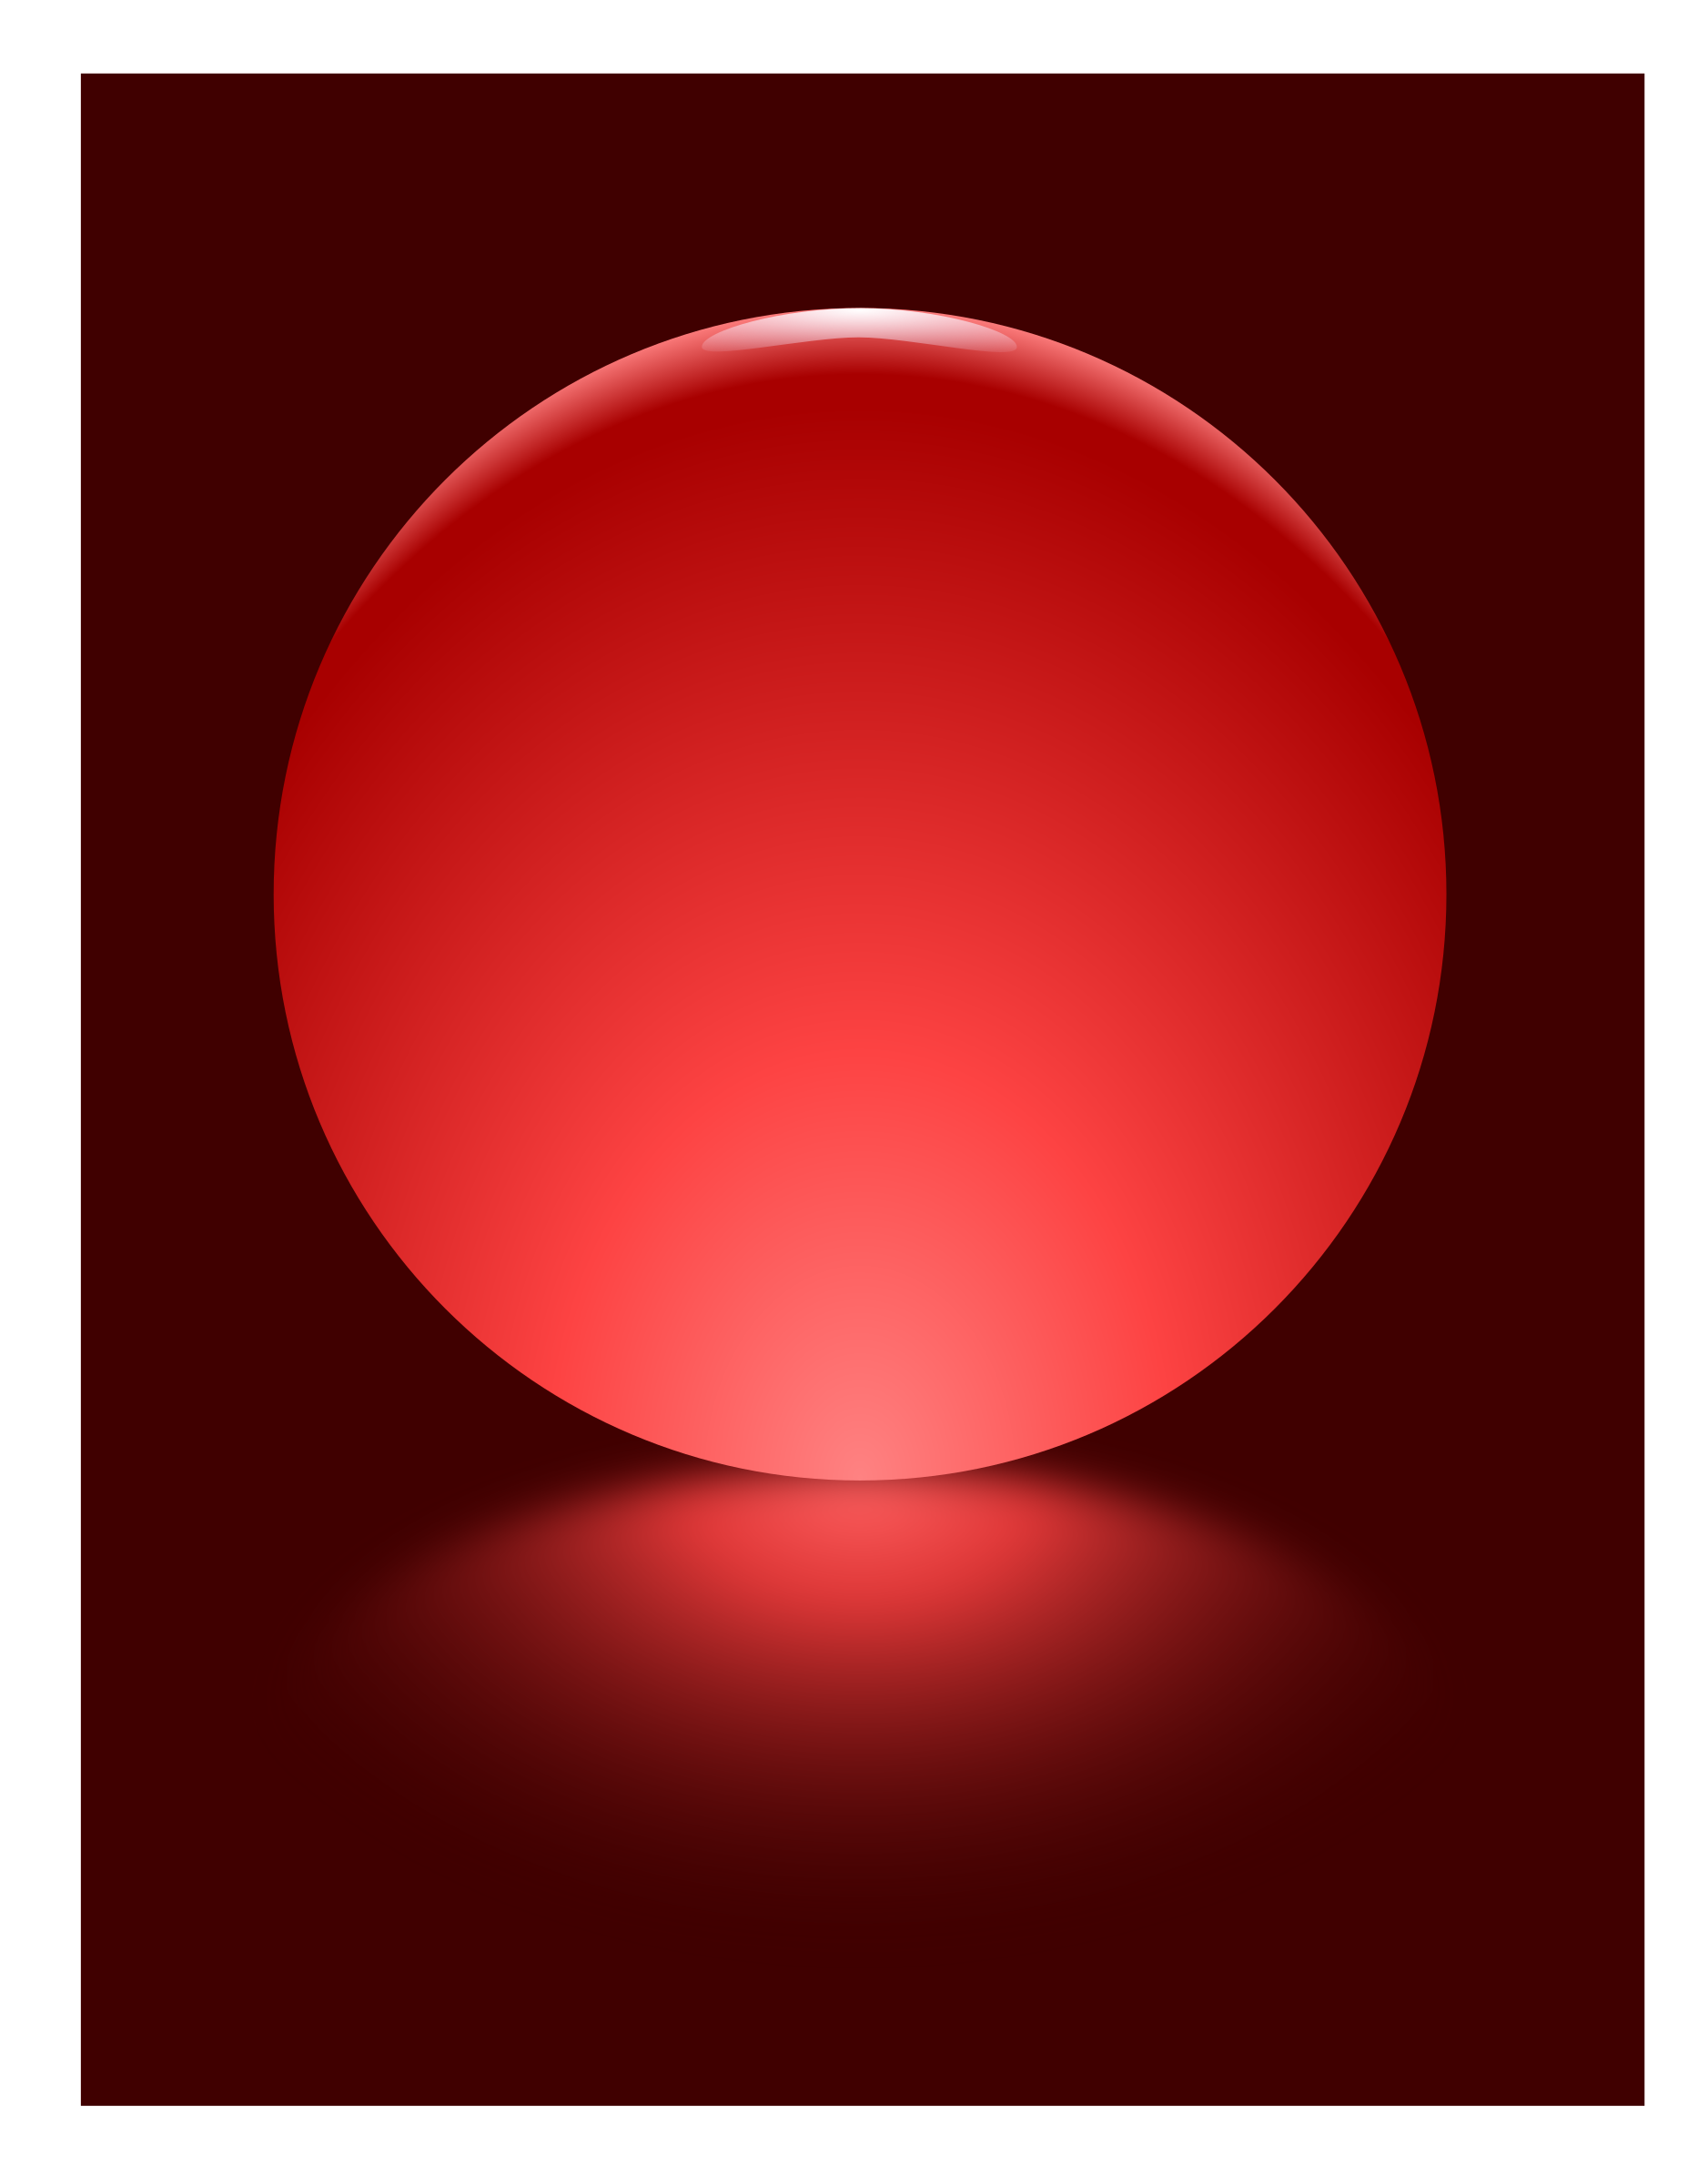 Red Sphere Blurred Reflection by djpaul